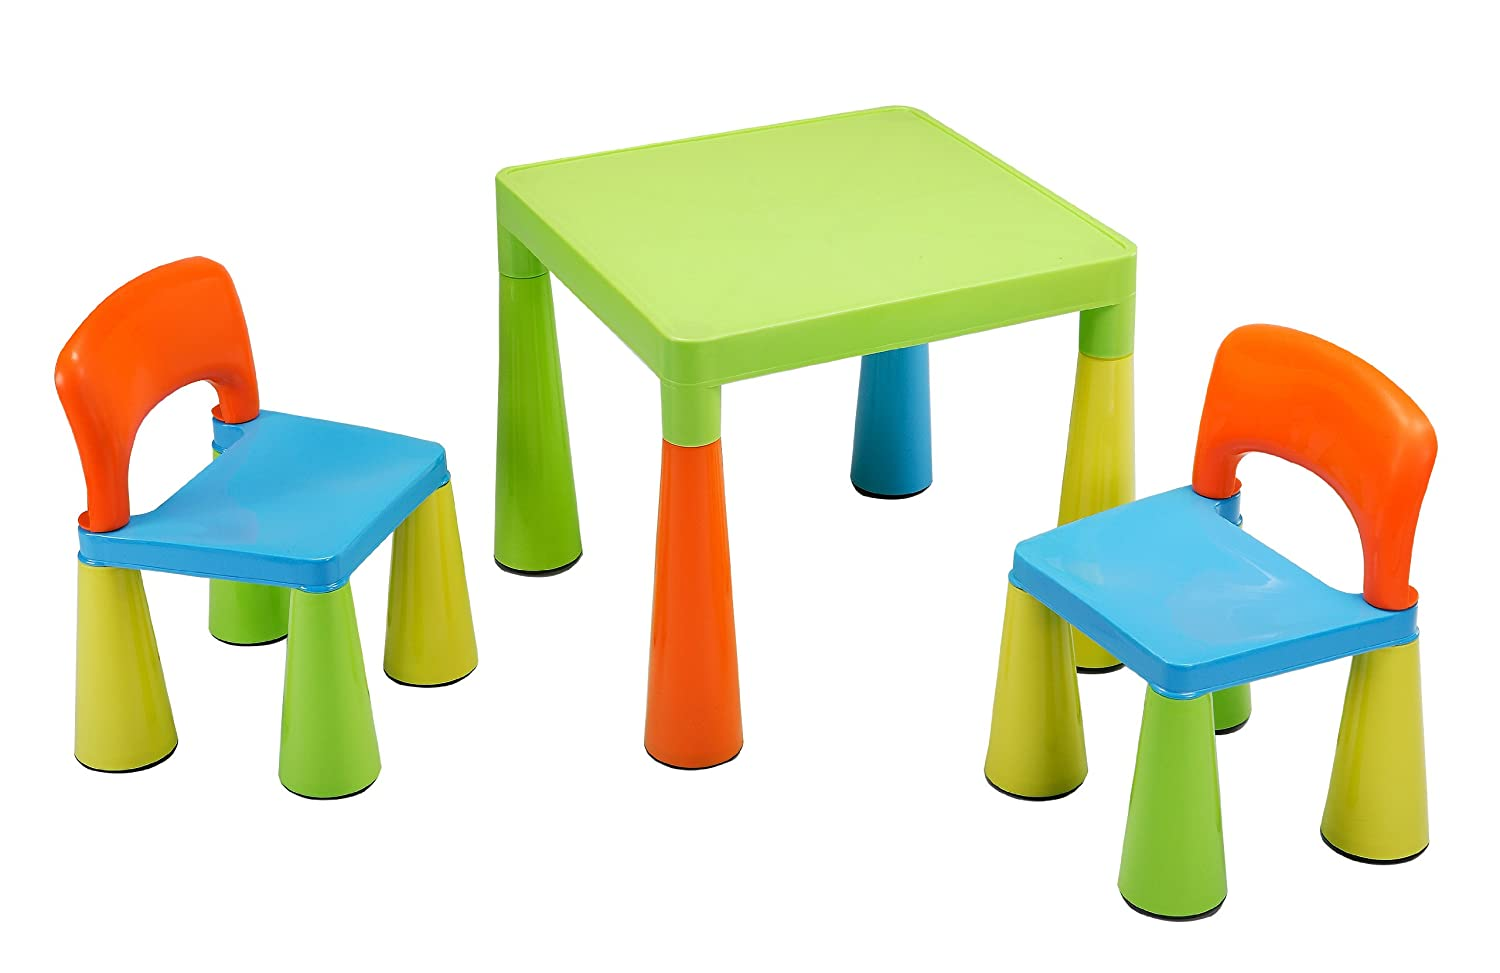 Liberty House Children's Table with 2 Chairs (Multi-Coloured) ToyCentre LHSM004UN